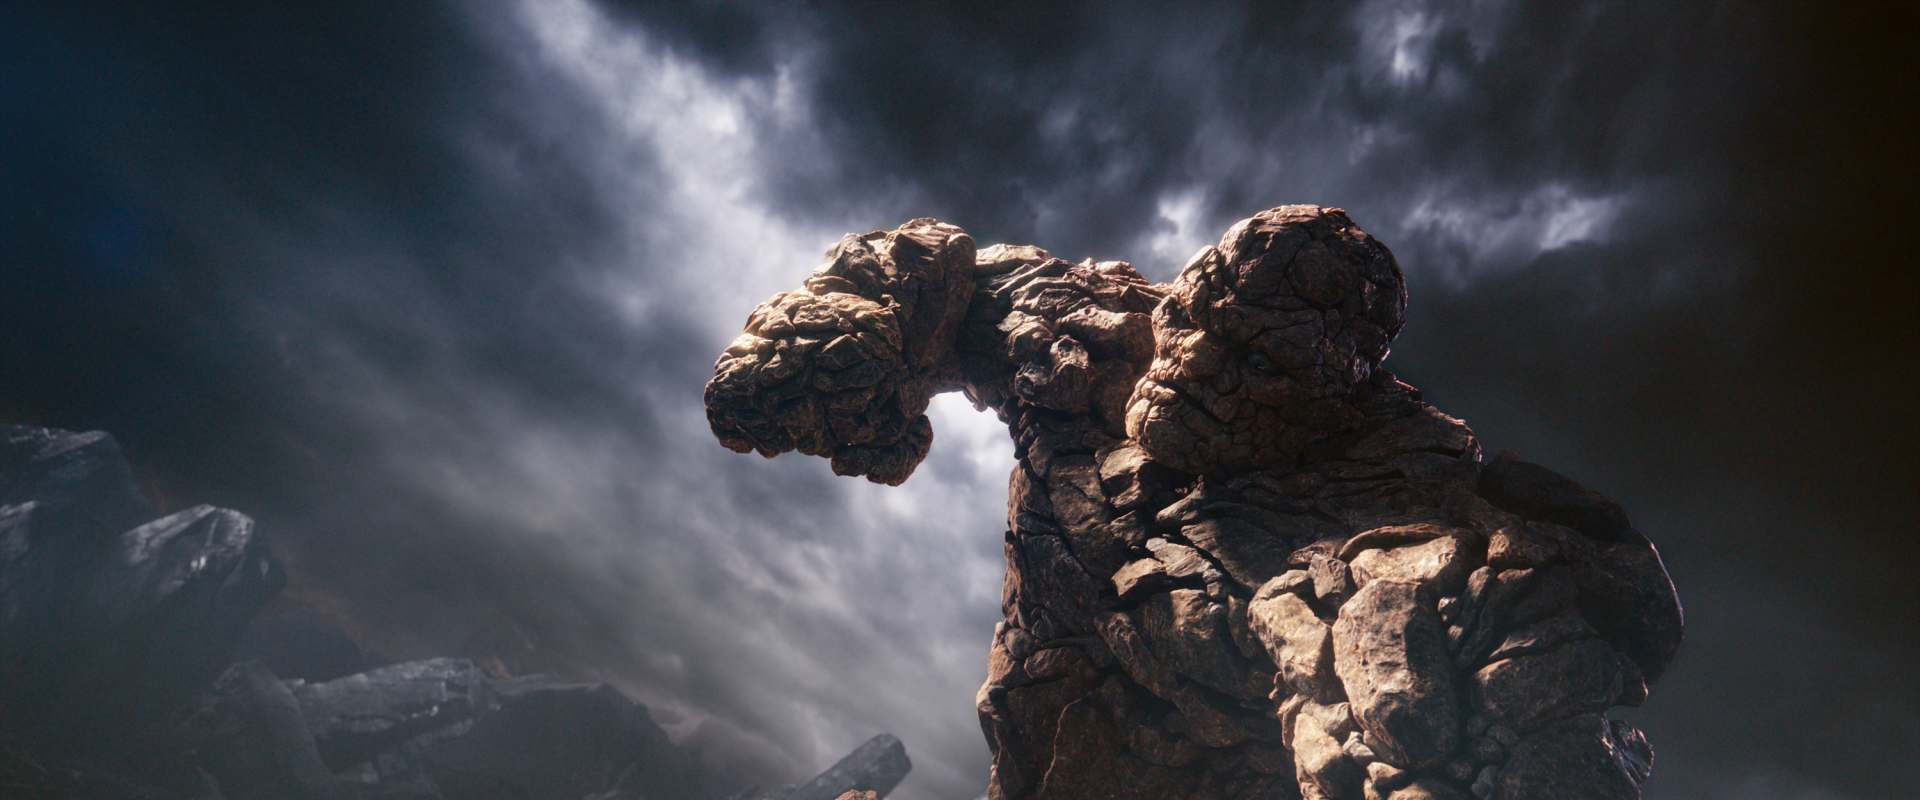 Fantastic Four background 2